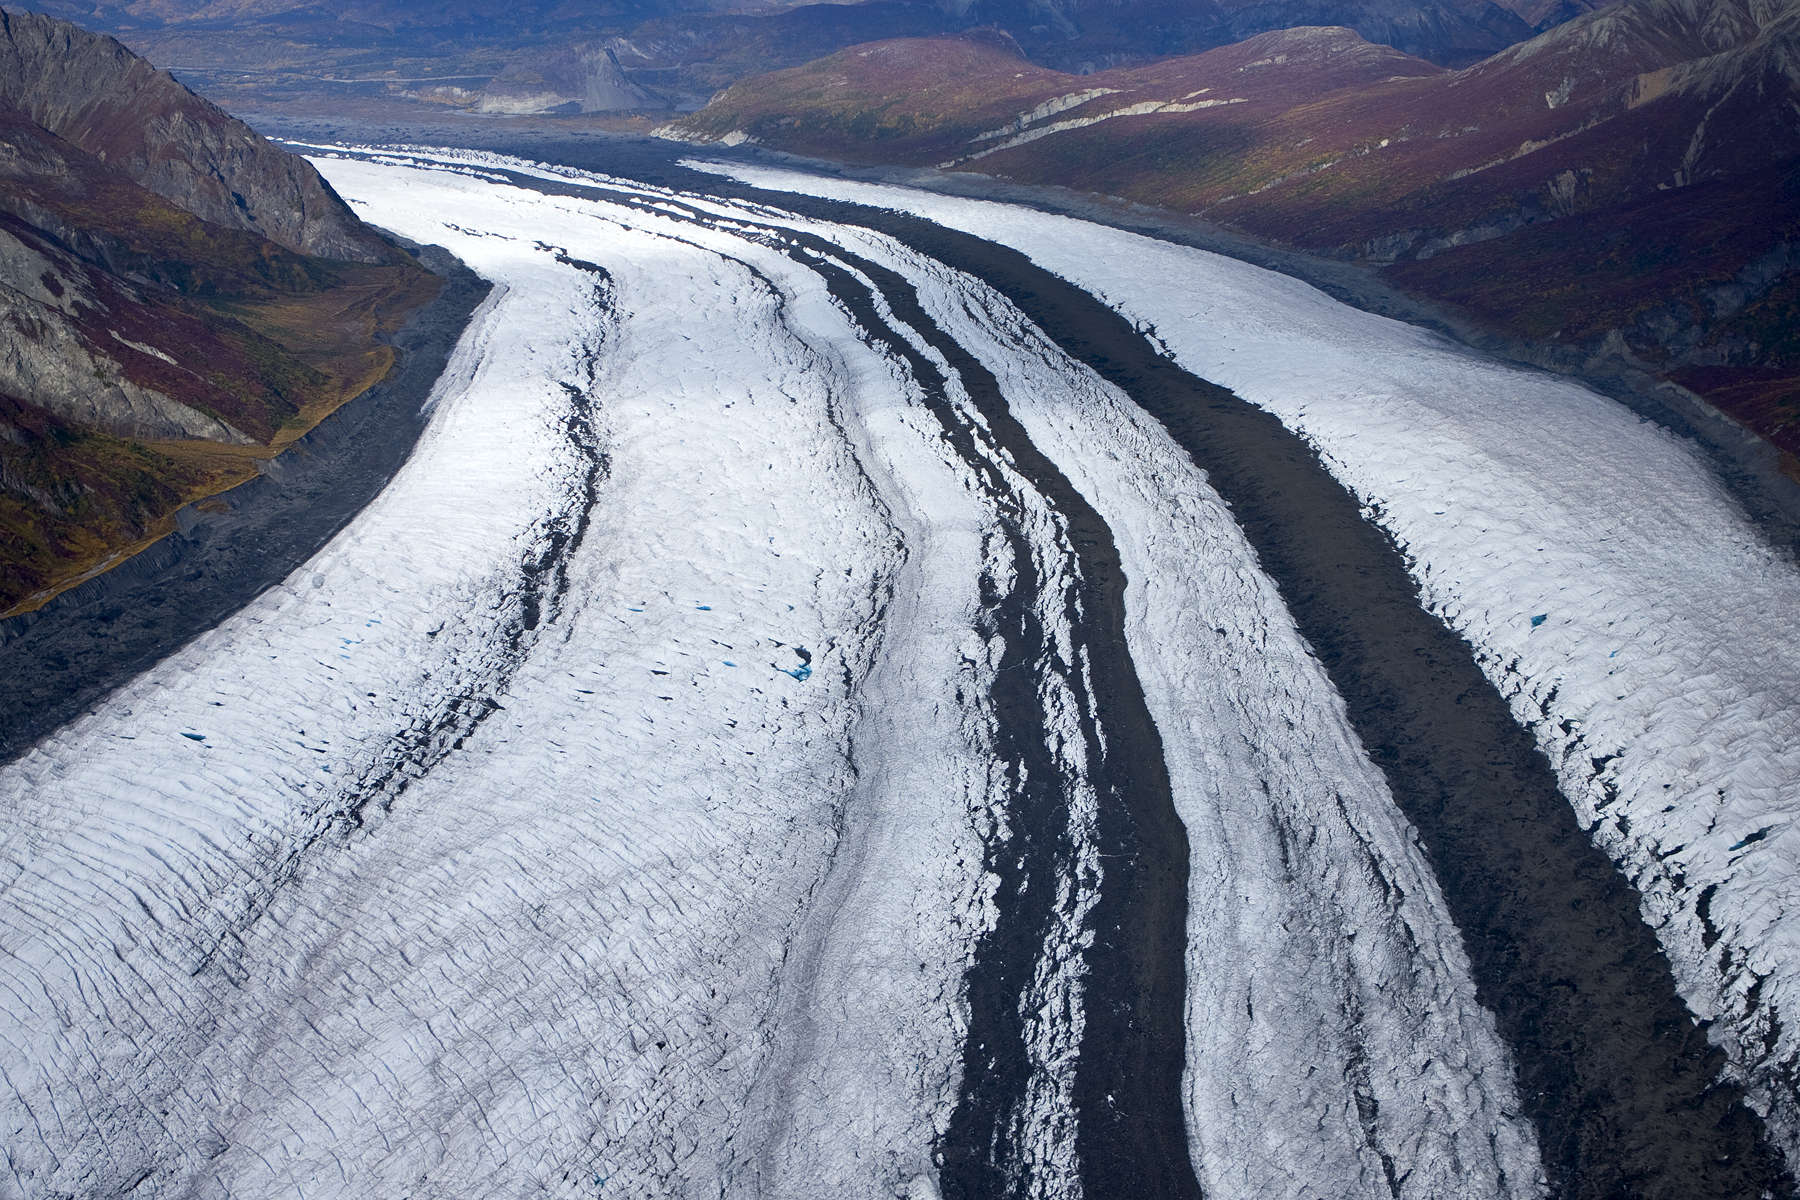 Aerial images of the {quote}Matanuska Glacier{quote}  in Alaska